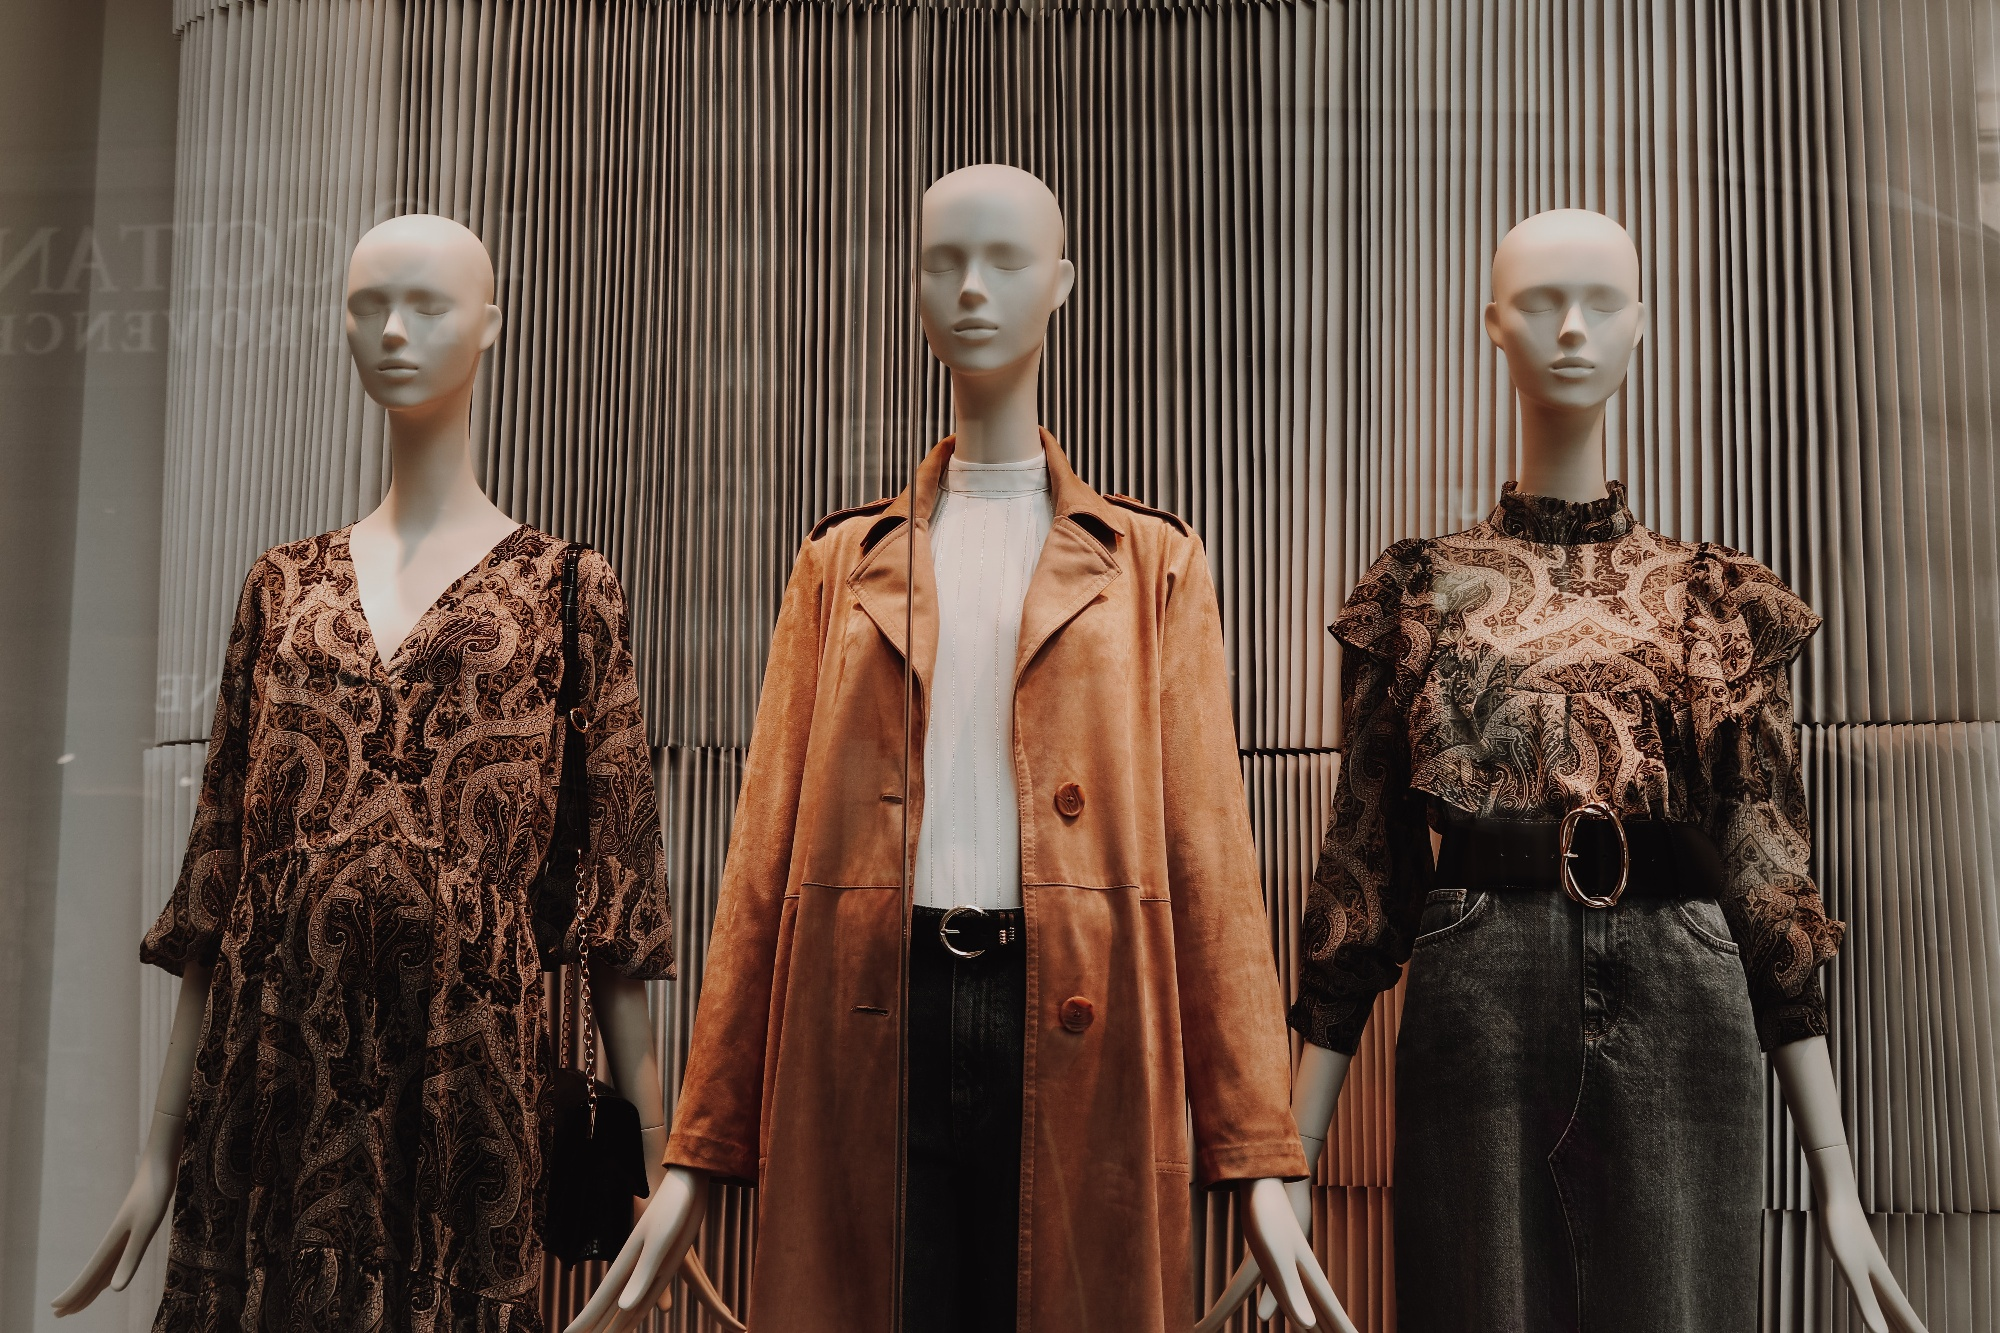 Mannequins wearing clothes